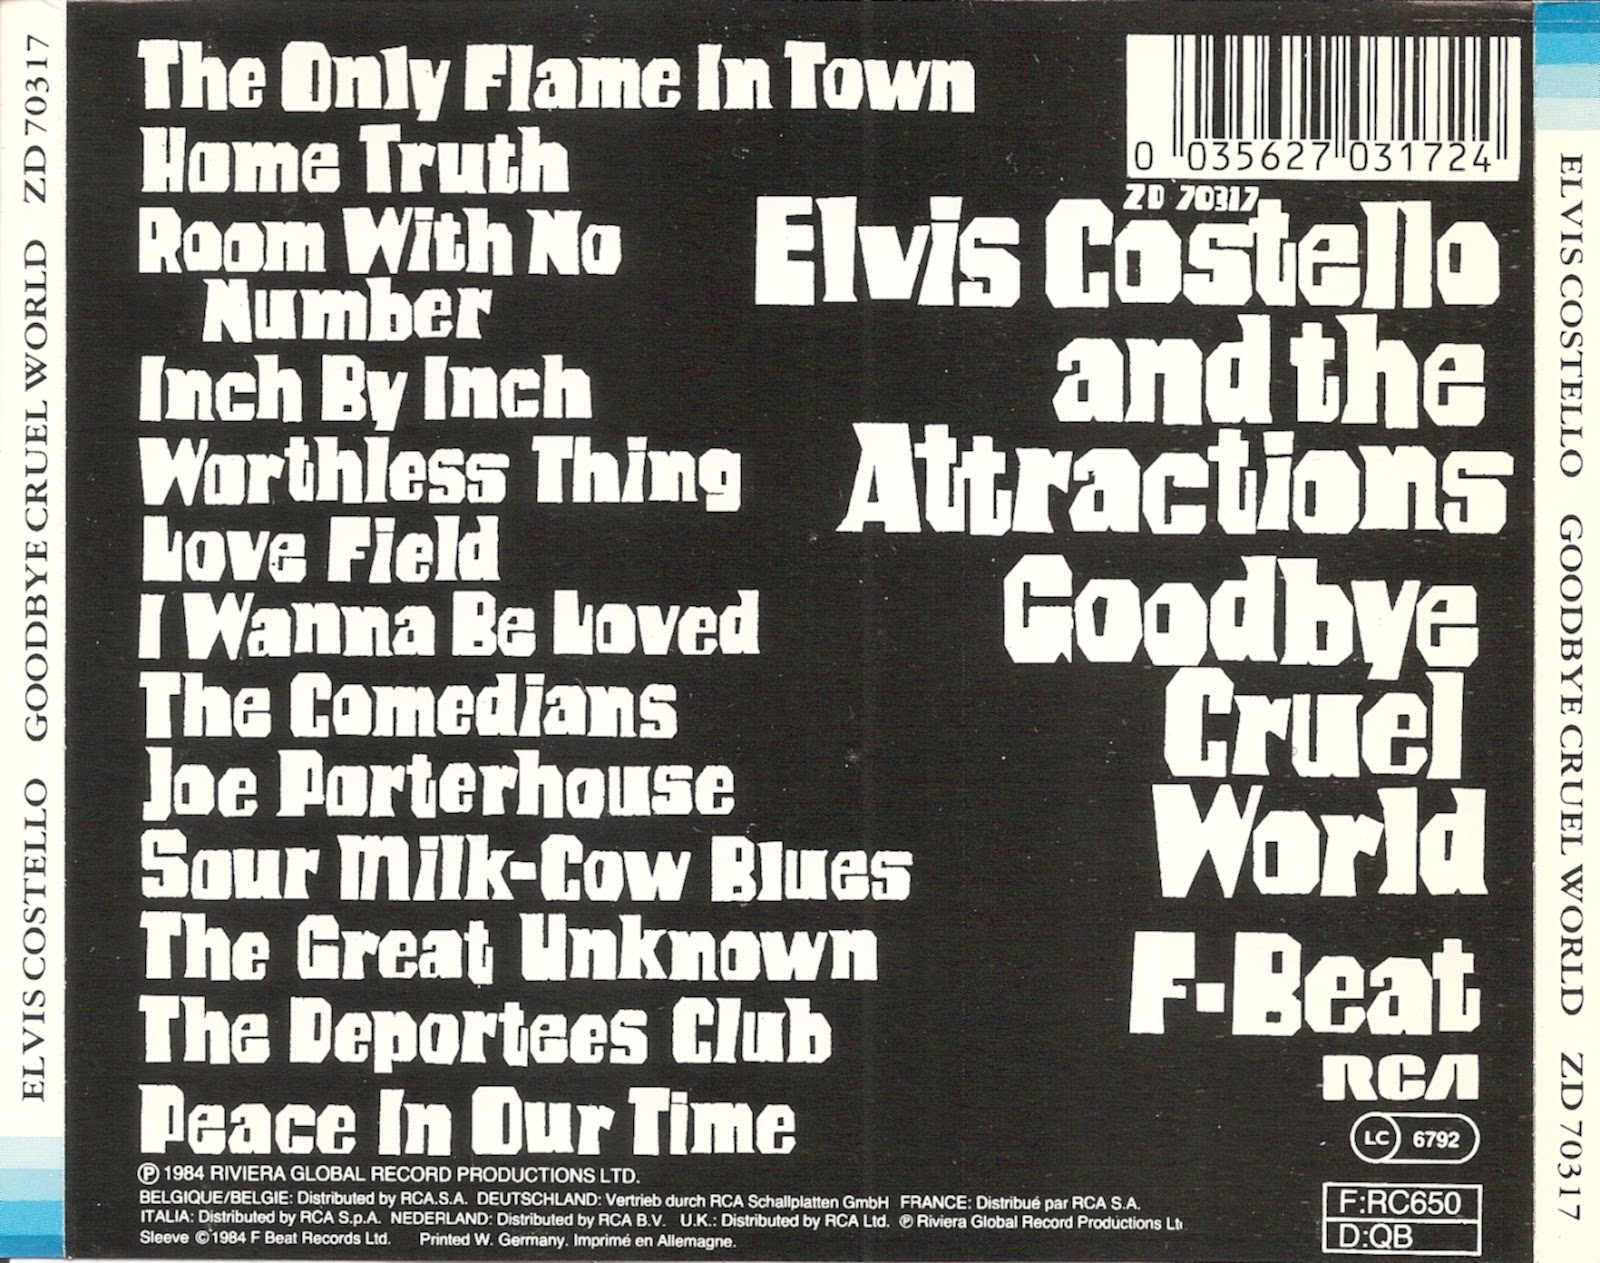 Goodbye Cruel World: The First Pressing CD Collection: Elvis Costello And The